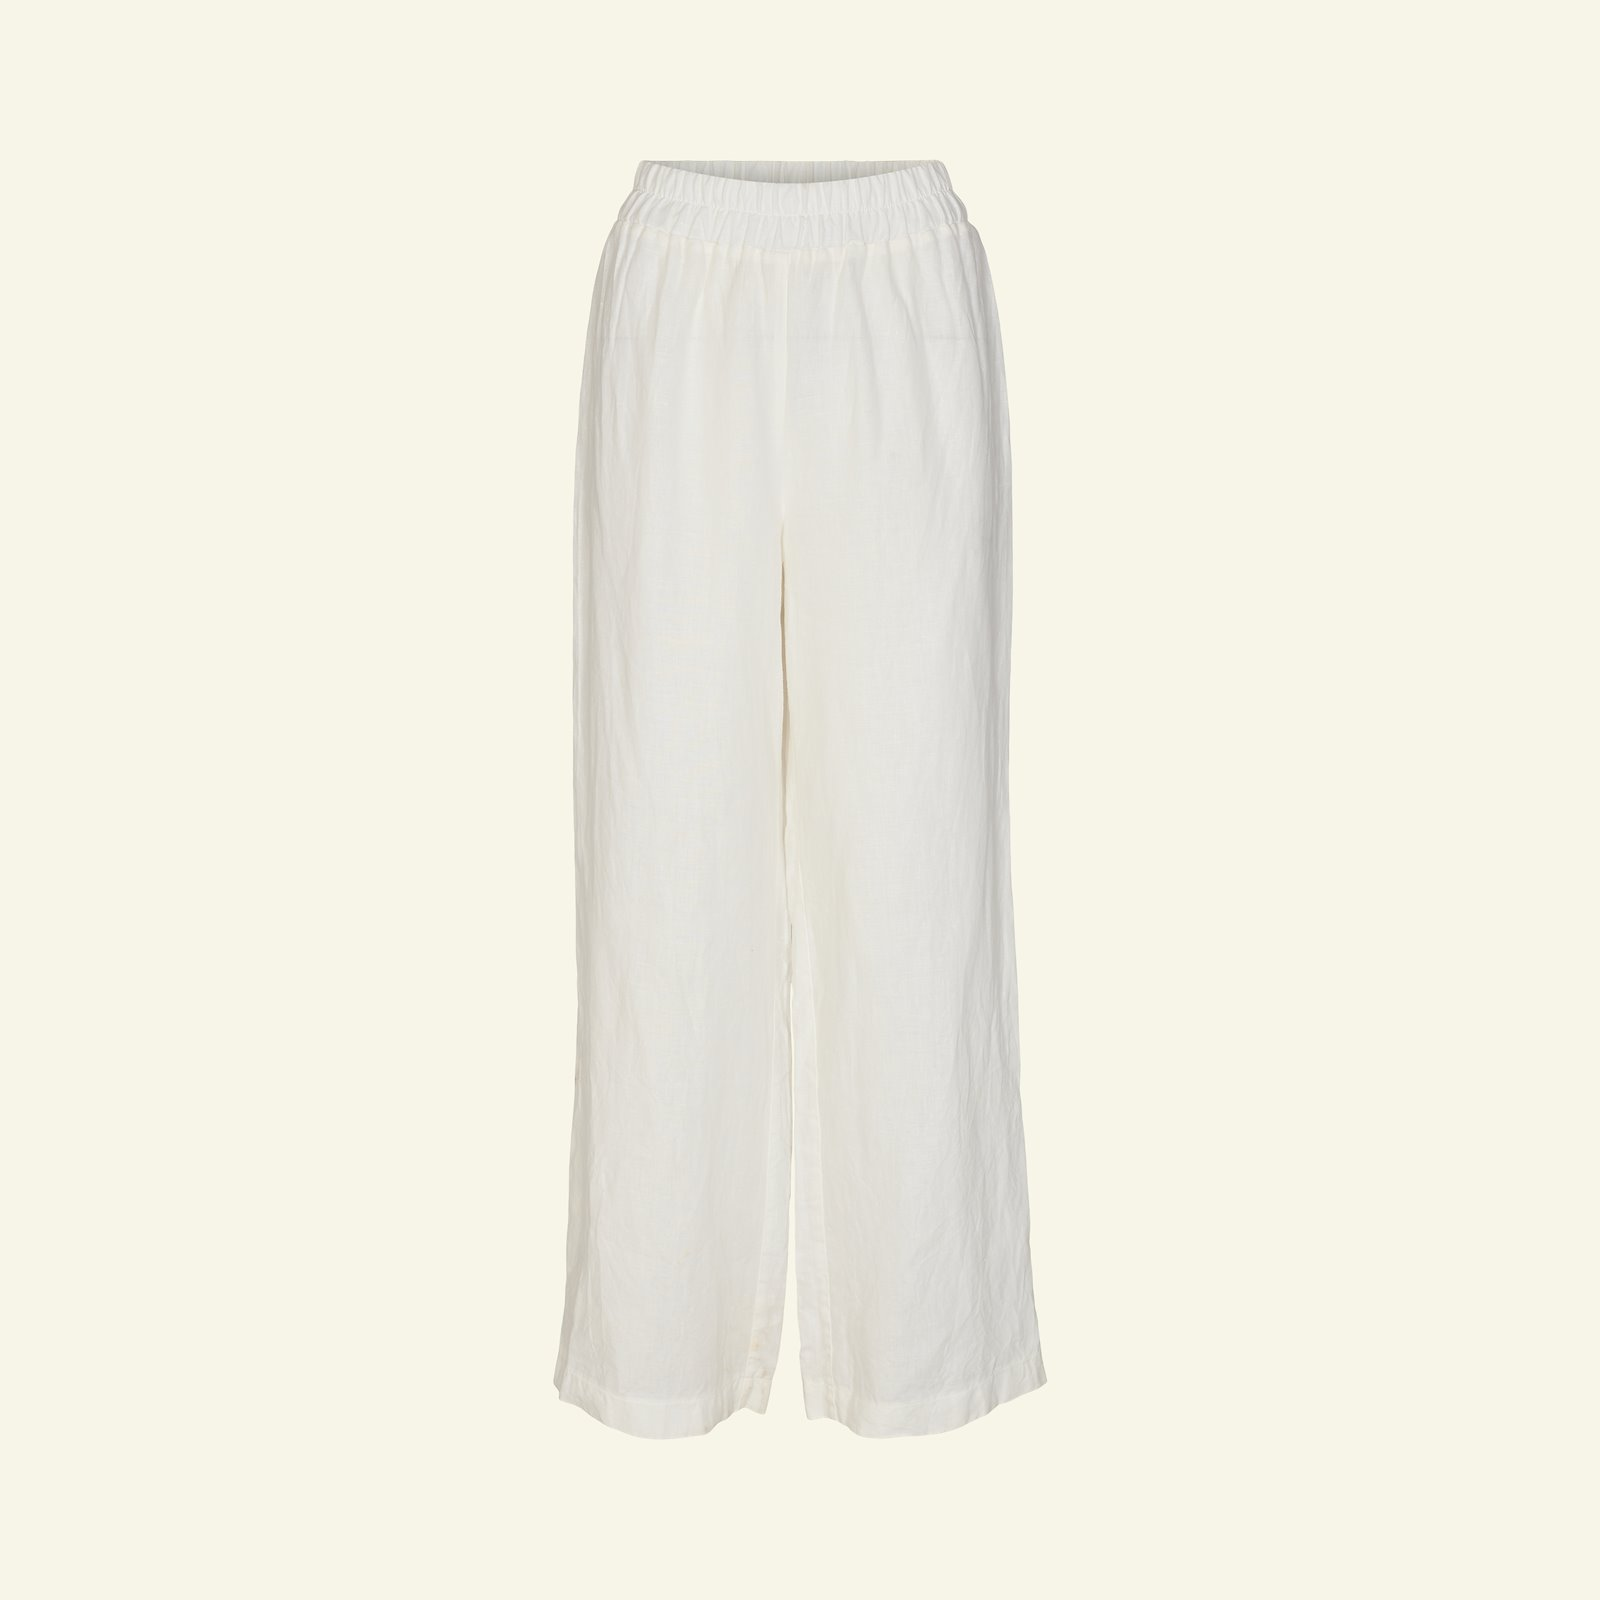 Wide trousers/shorts w. pockets, 42/14 p20051_850490_sskit